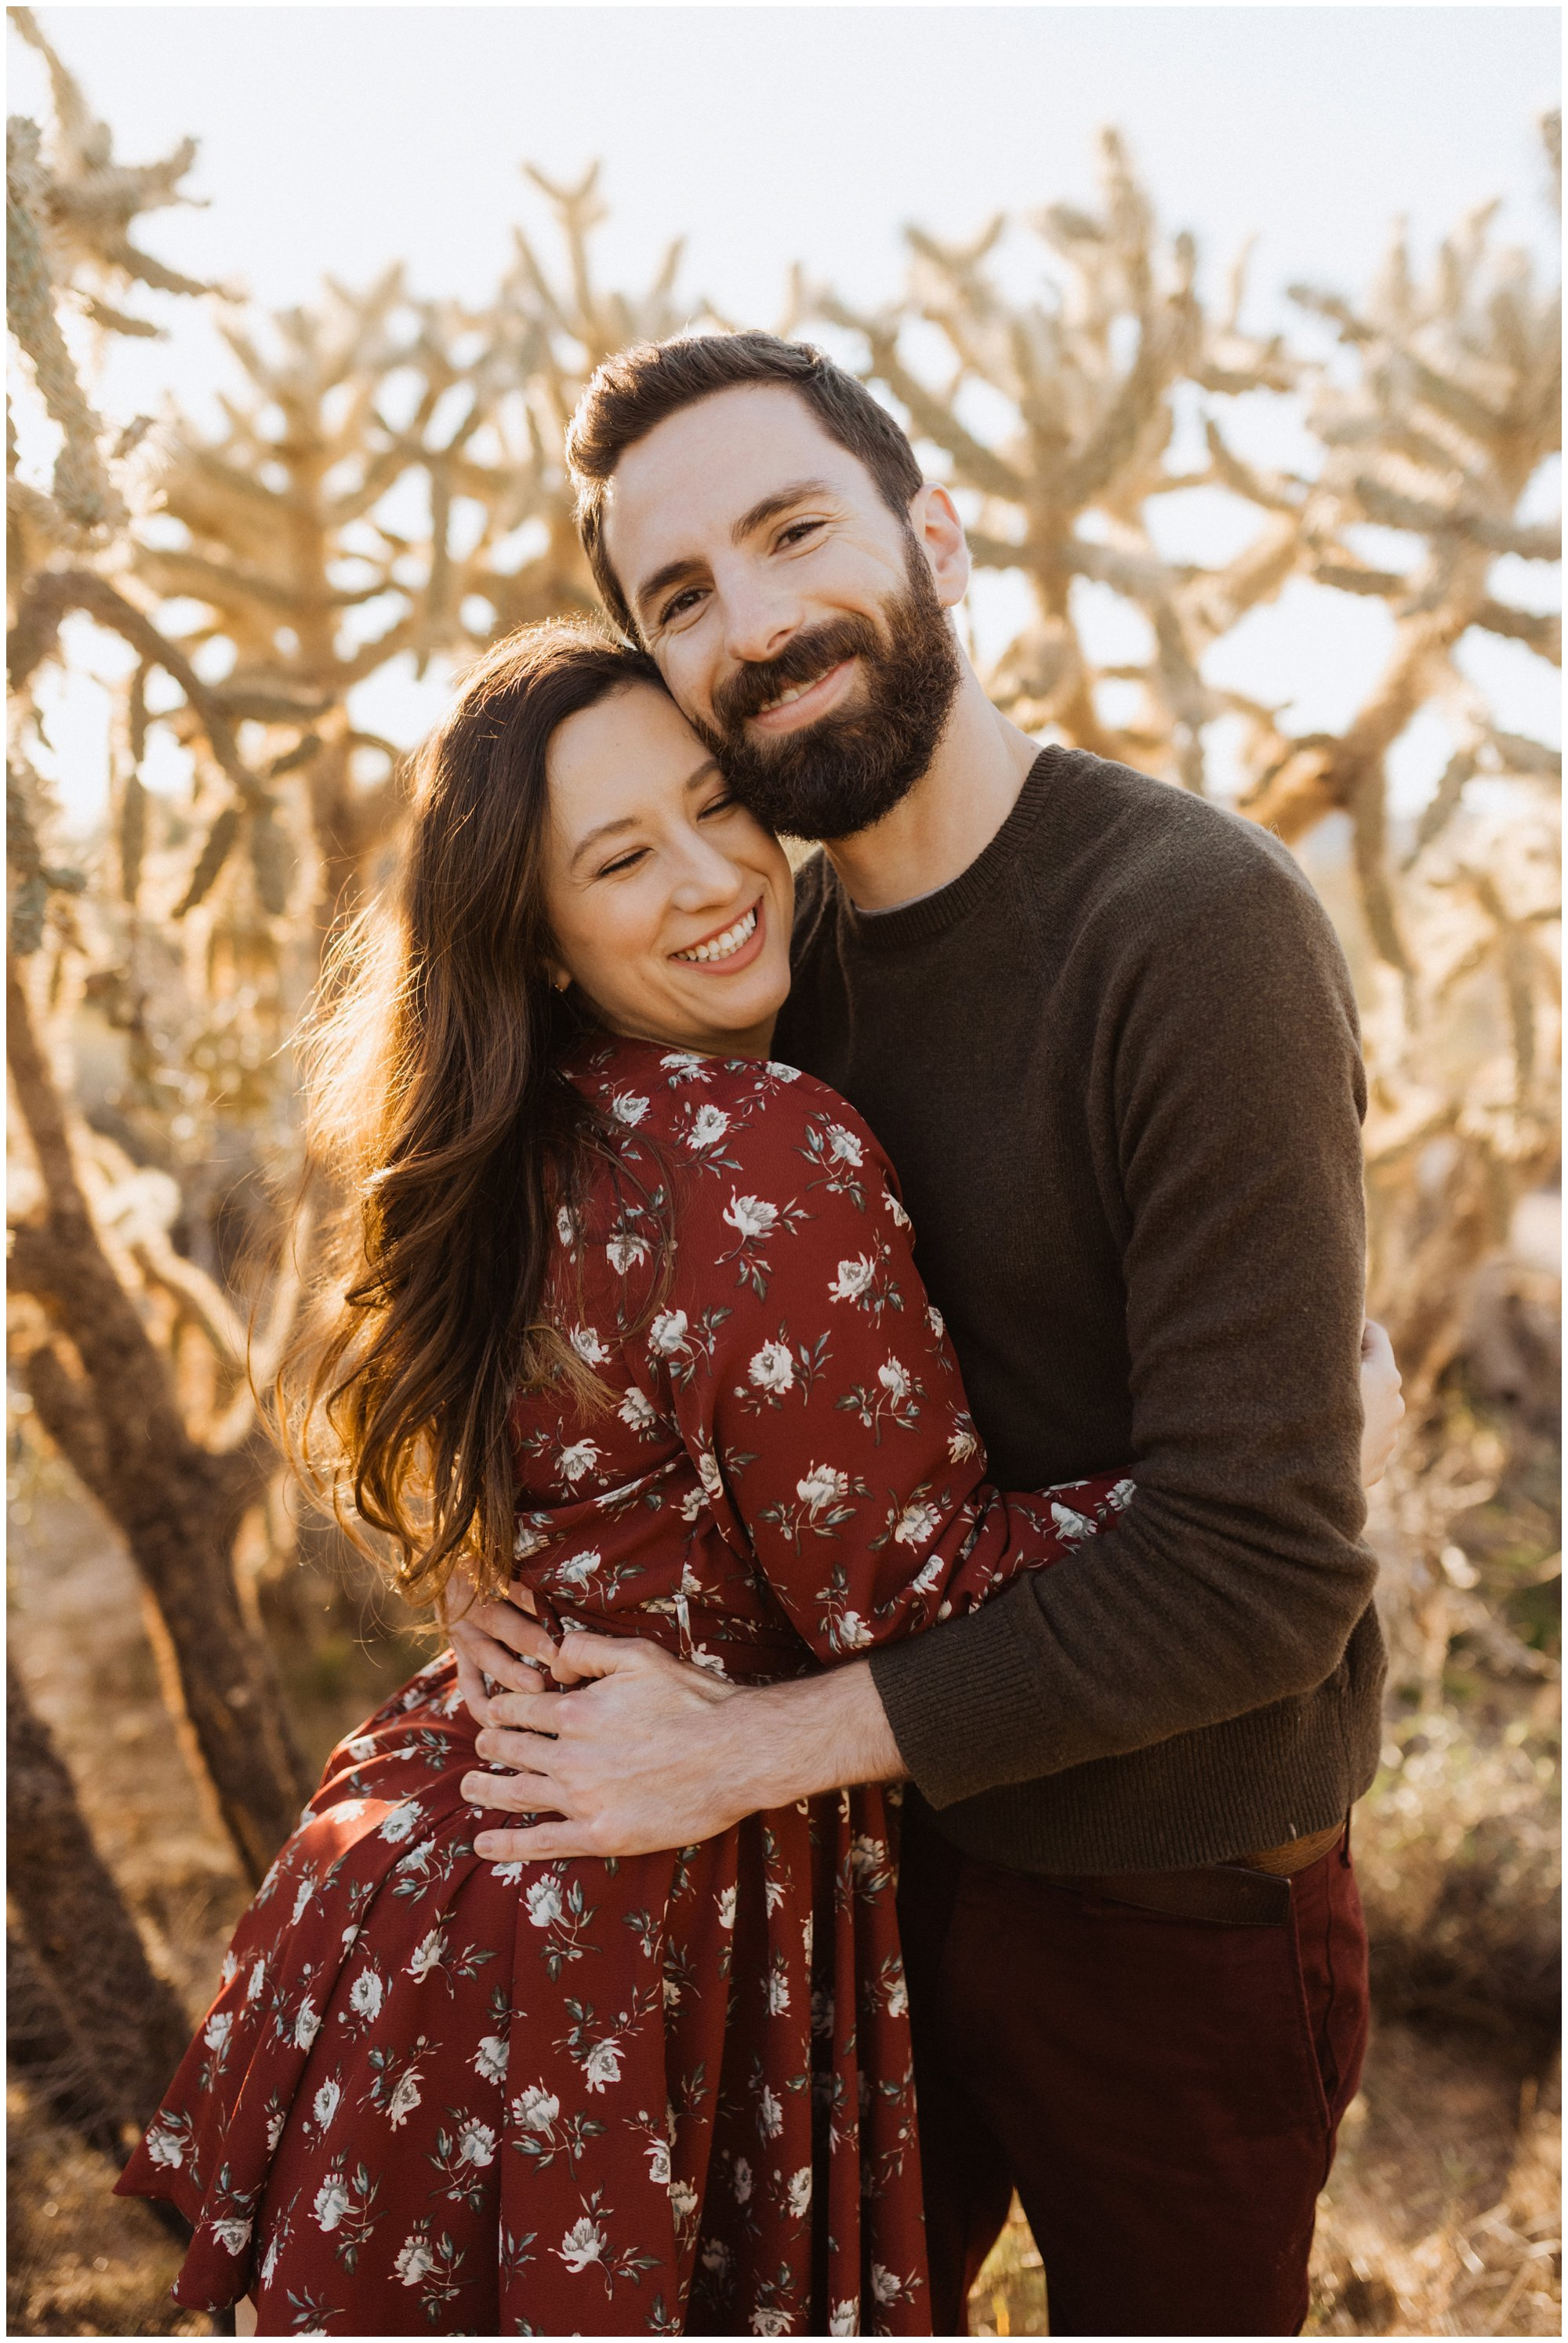 Arizona Desert Engagement Session - Megan + Geno - Ashtyn Nicole Photo_0003.jpg